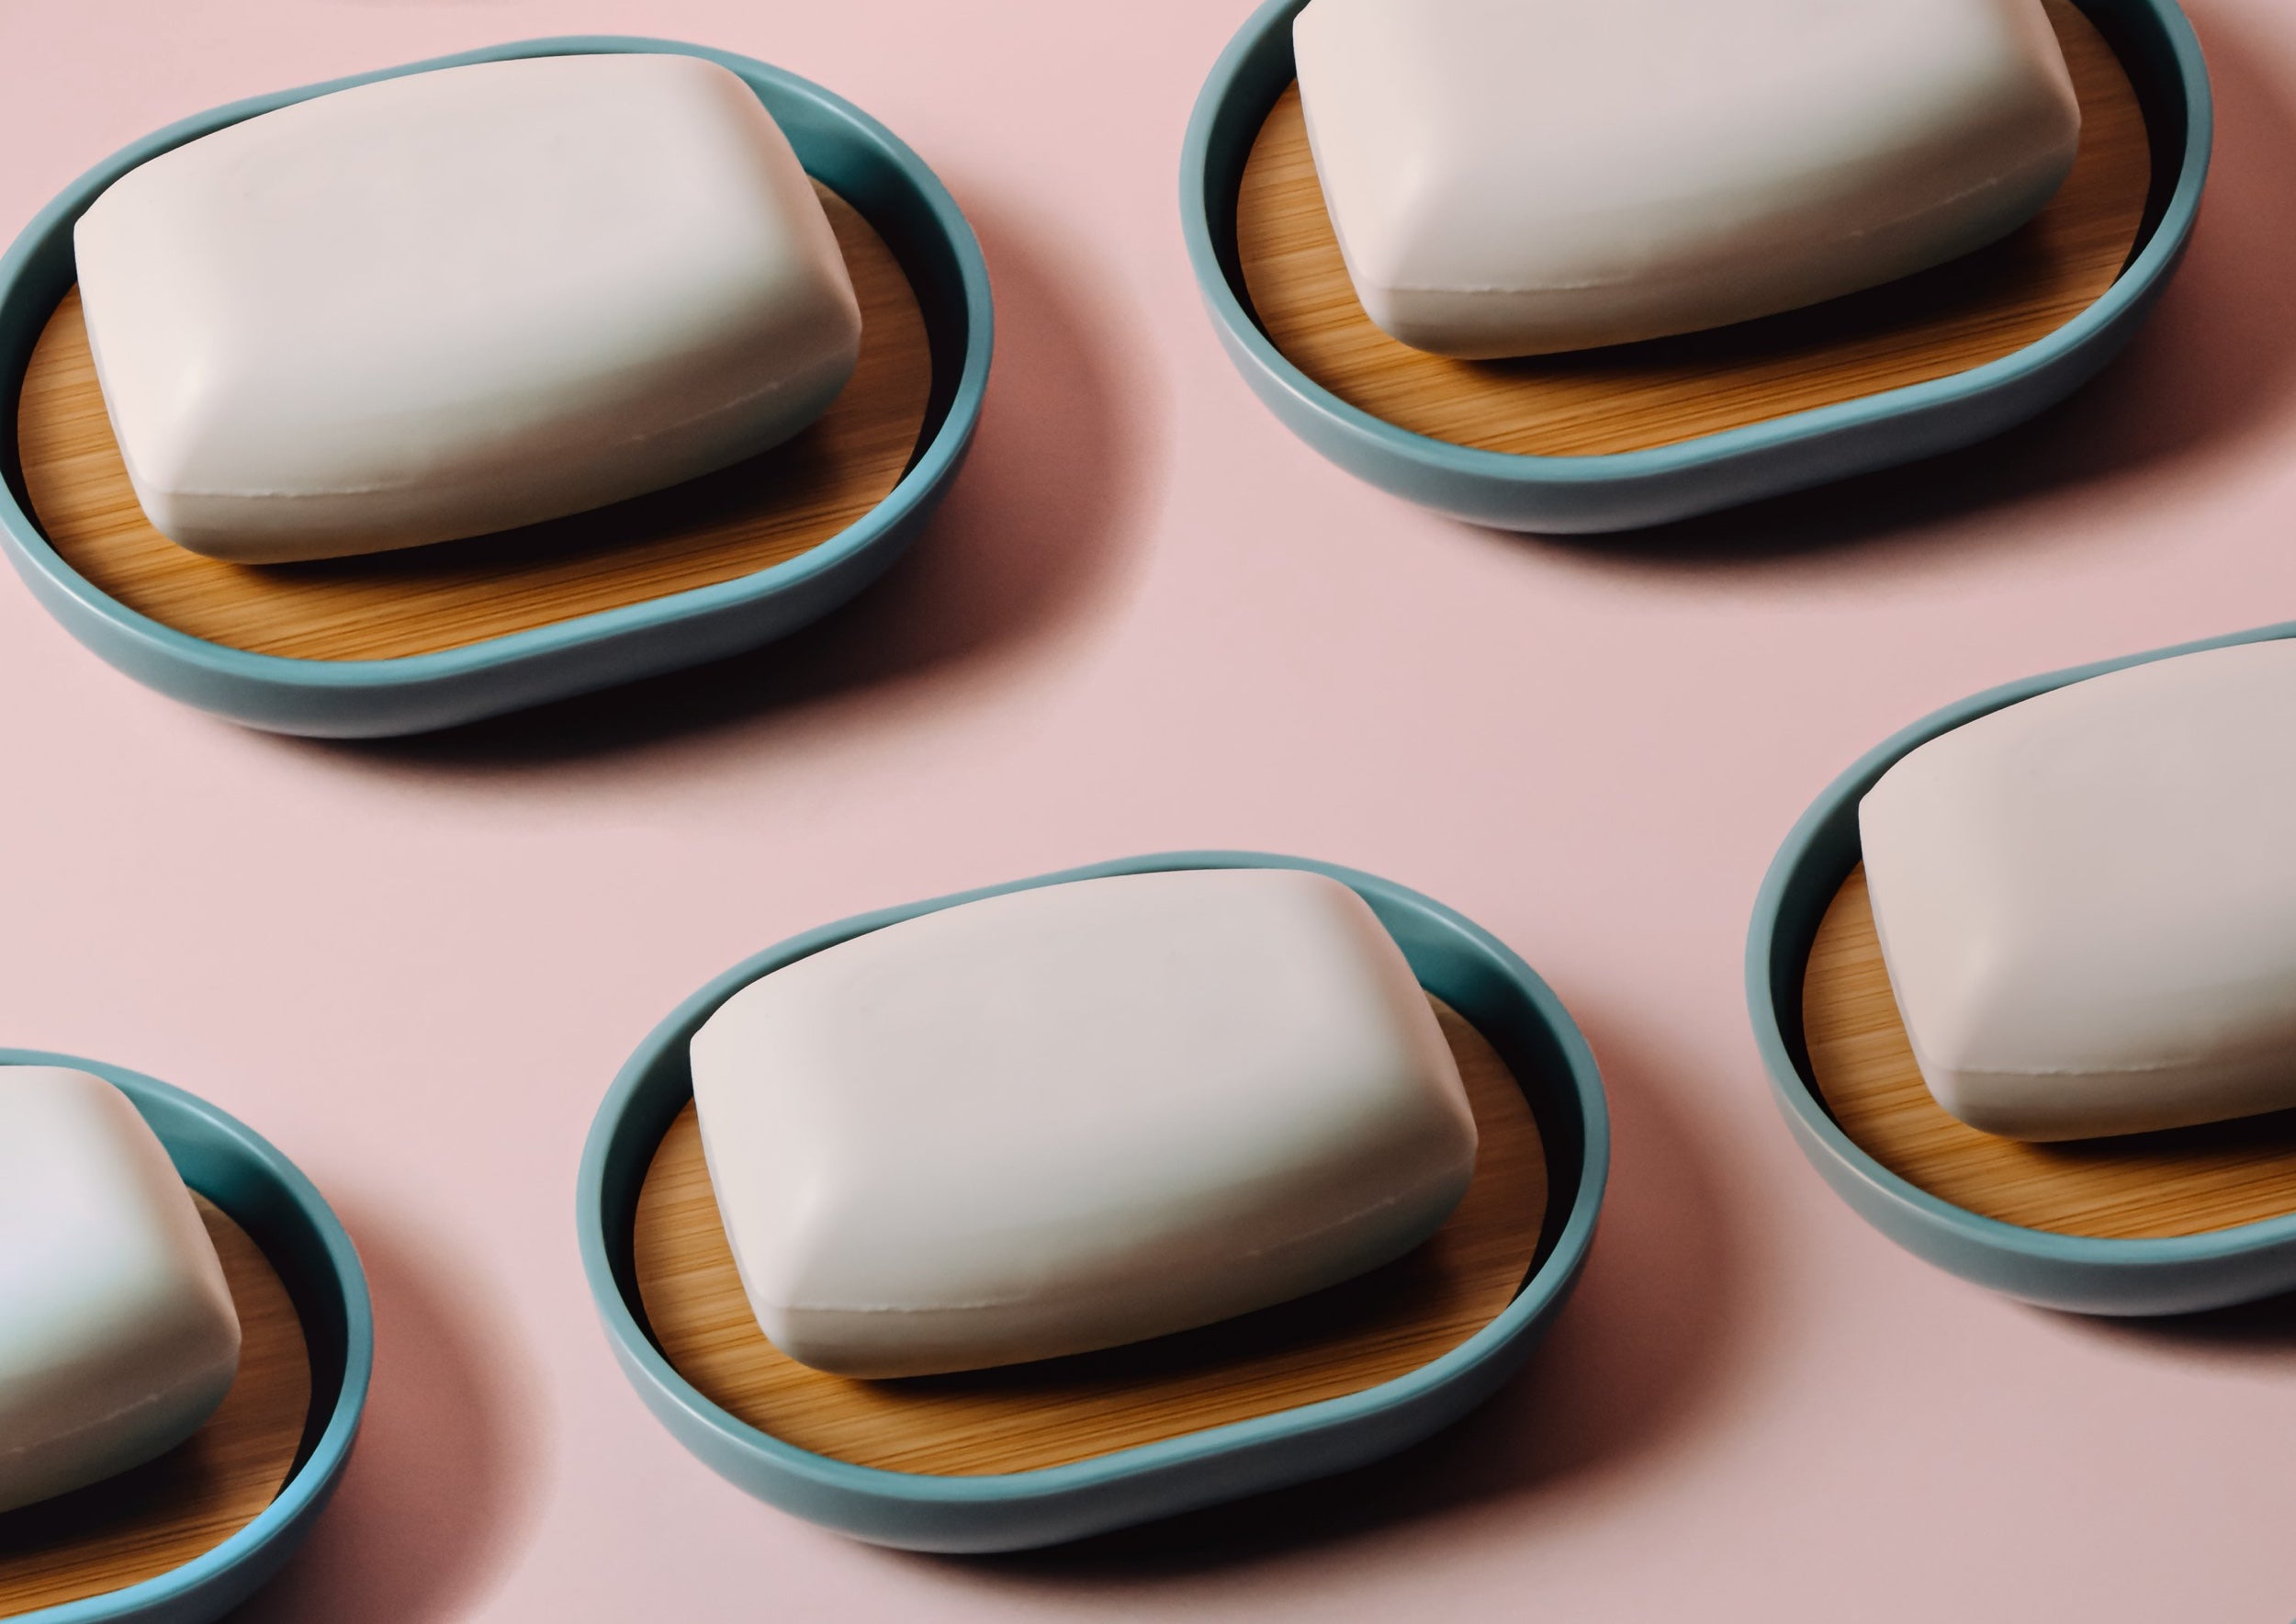 Several bars of soap are arranged on soap dishes on a pink background